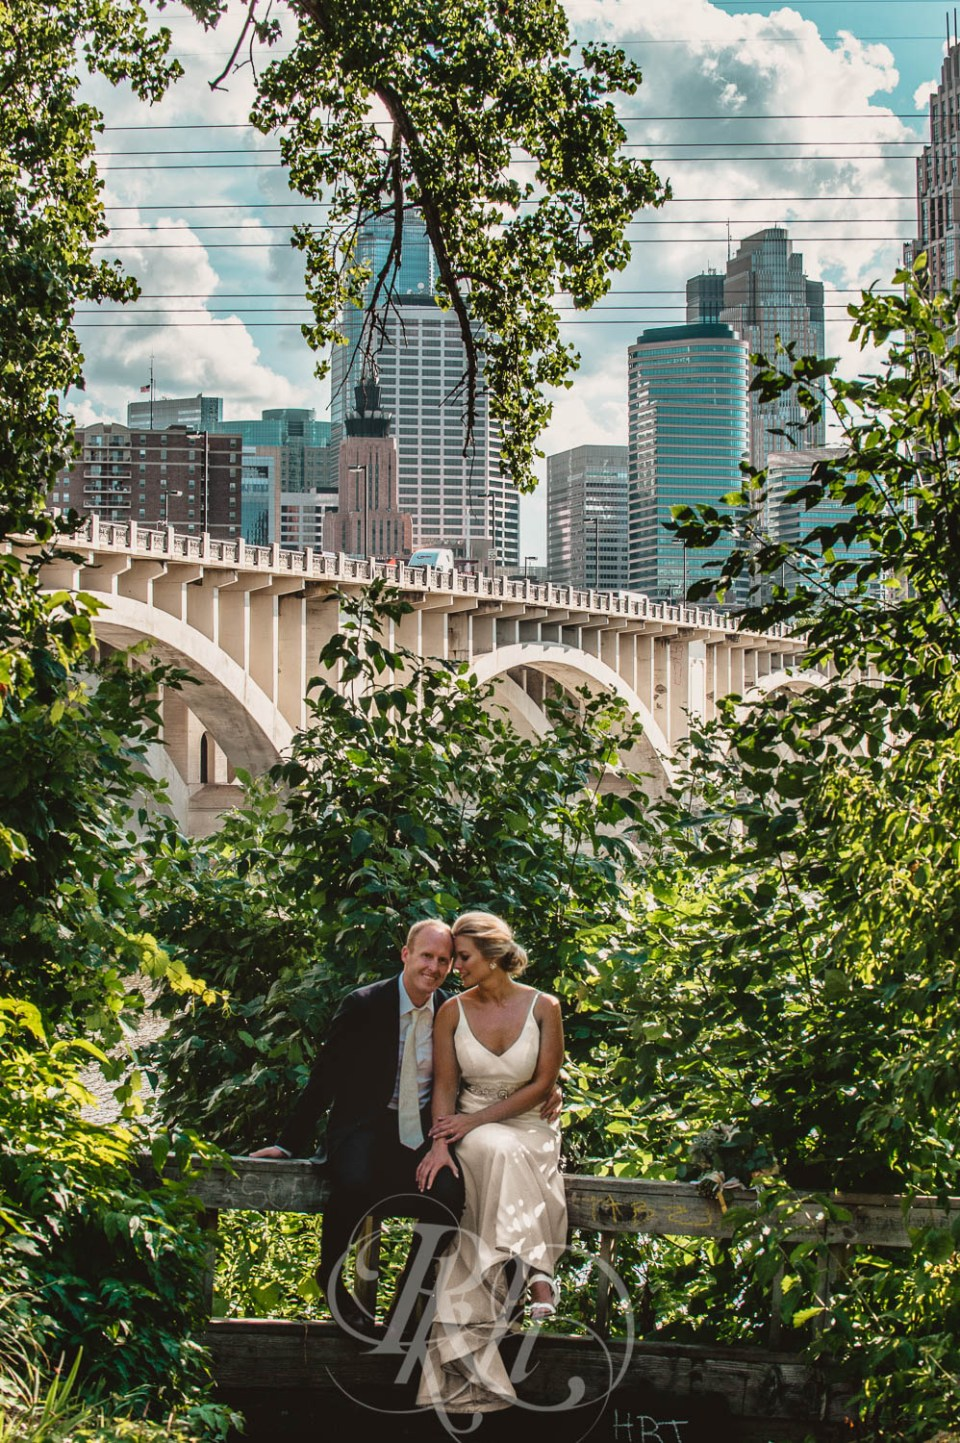 Third street bridge Minneapolis bride and groom